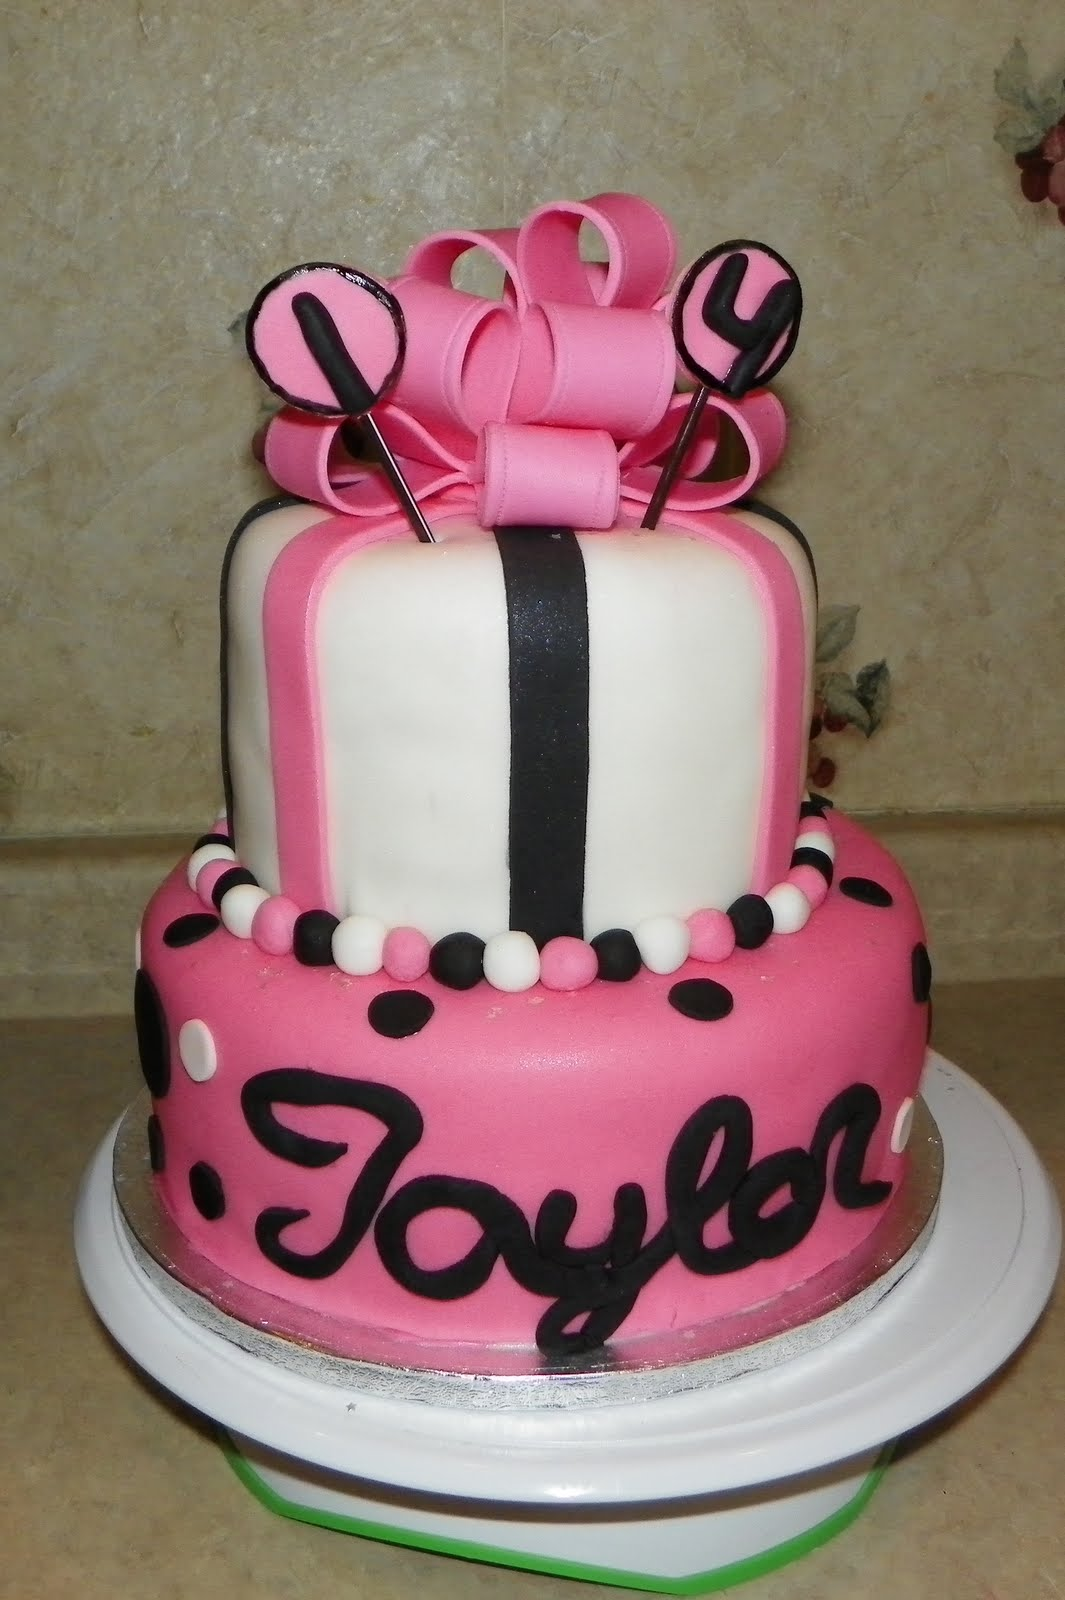 For Young Women Birthday Cakes for Pinterest